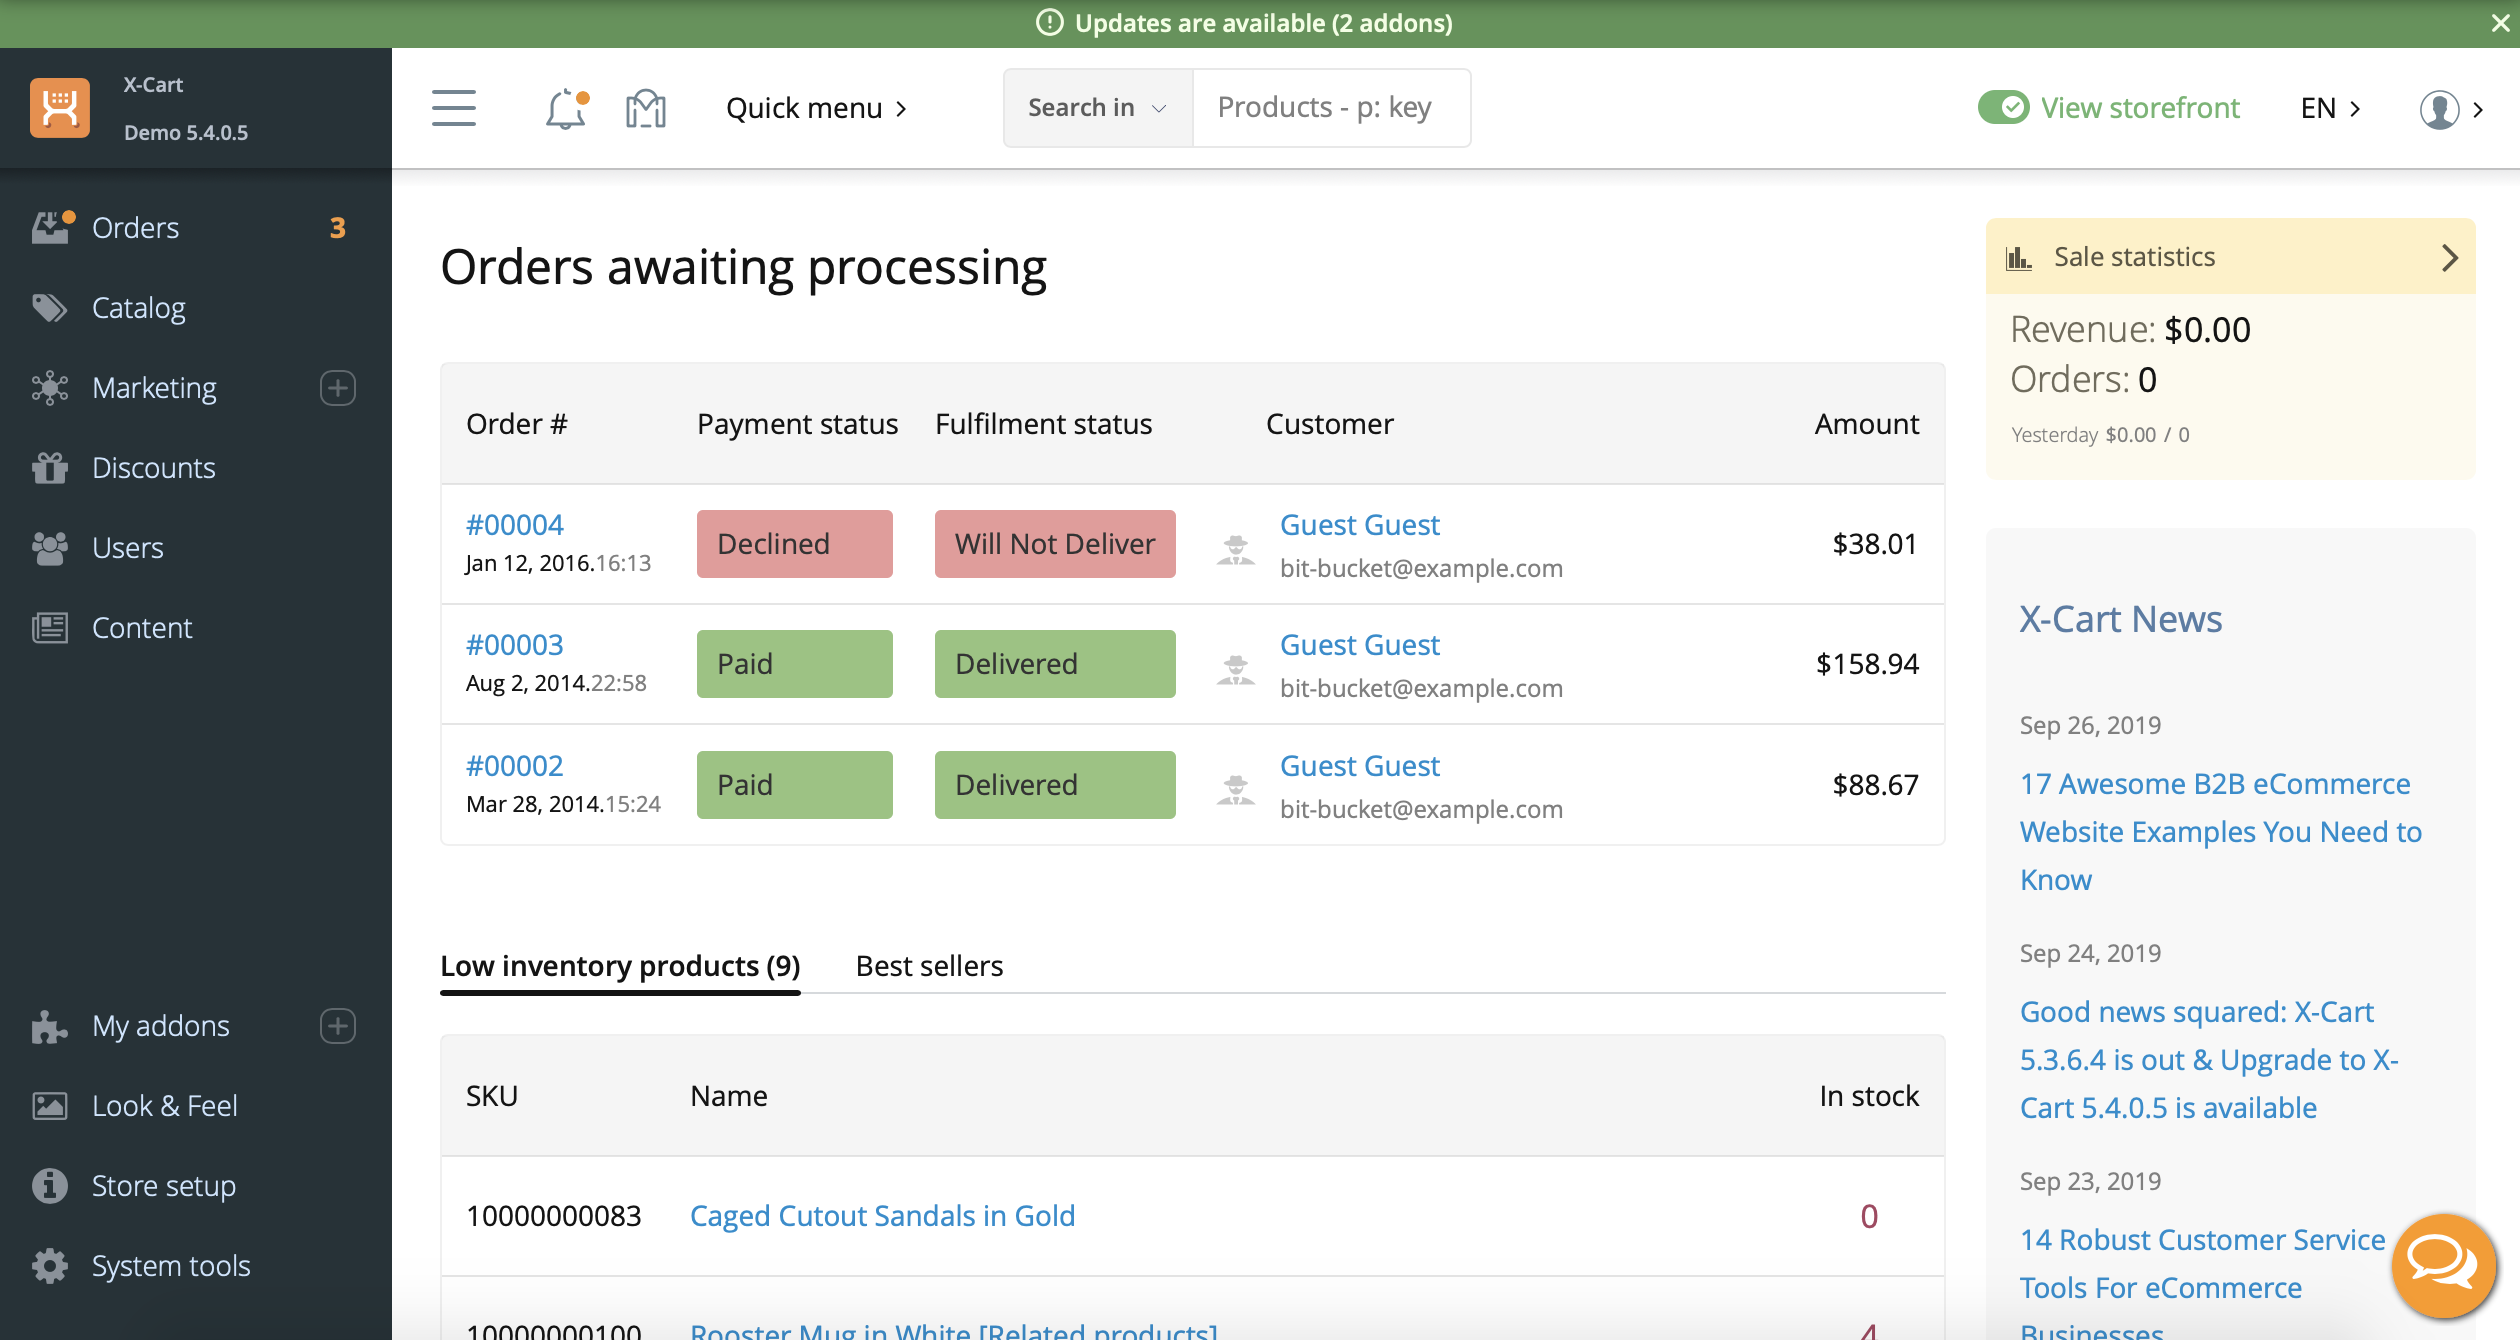 Admin dashboard in X-Cart